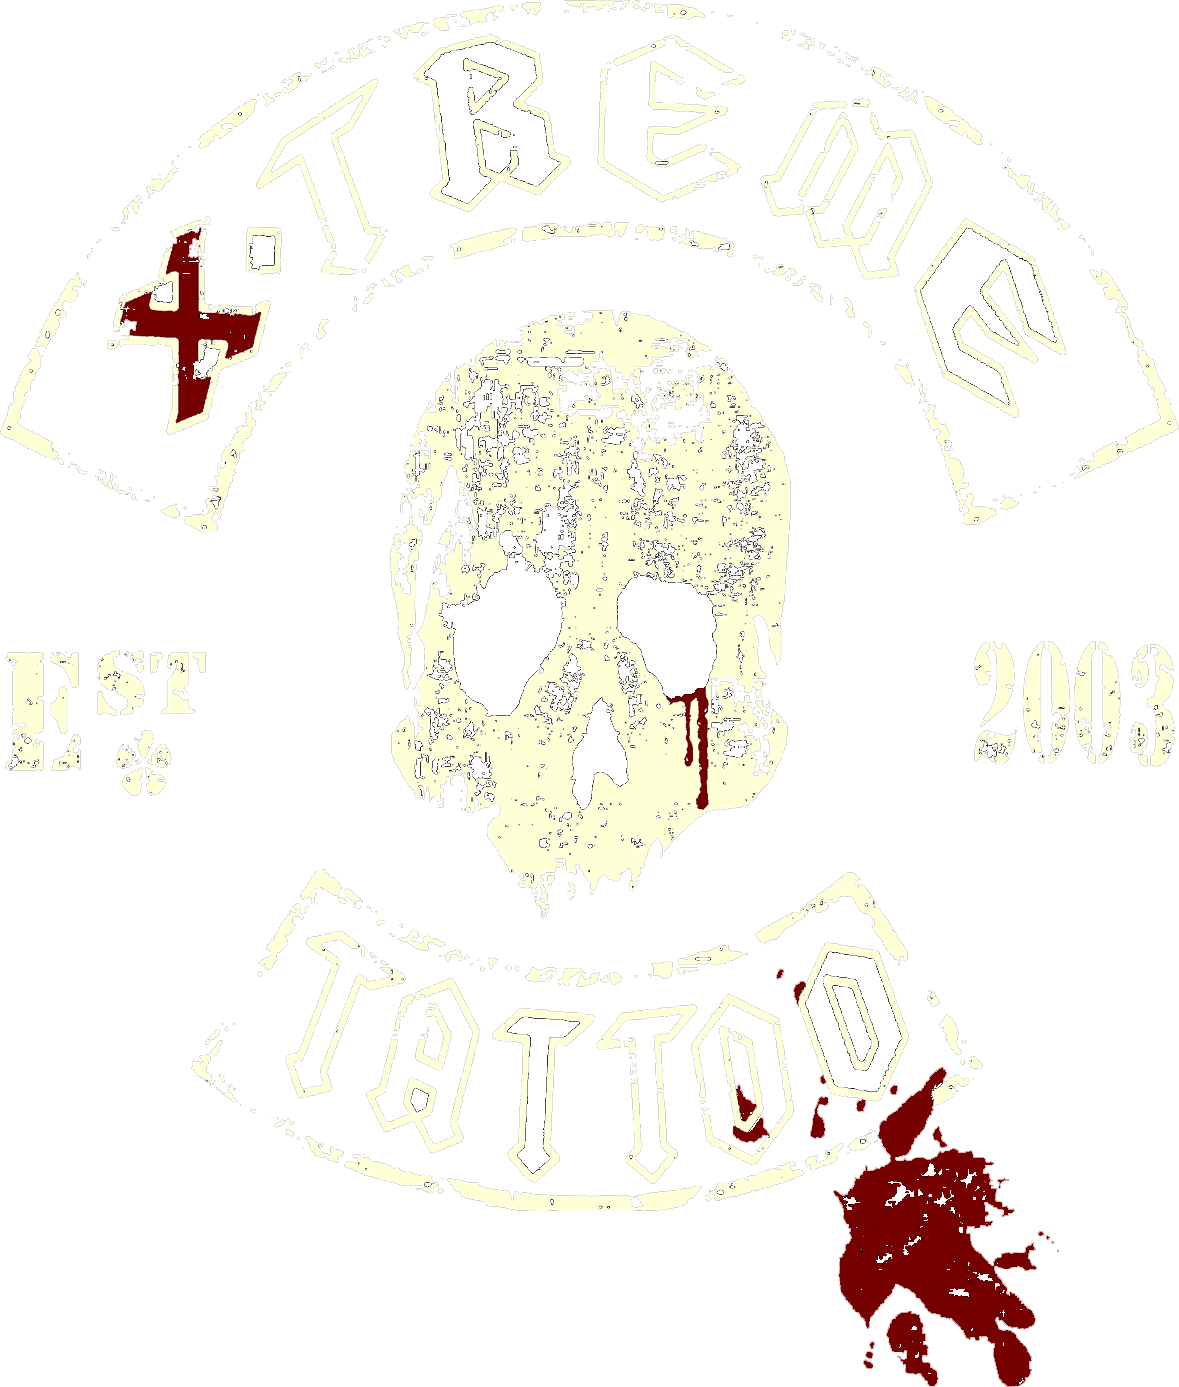 Xtremetattoo.be